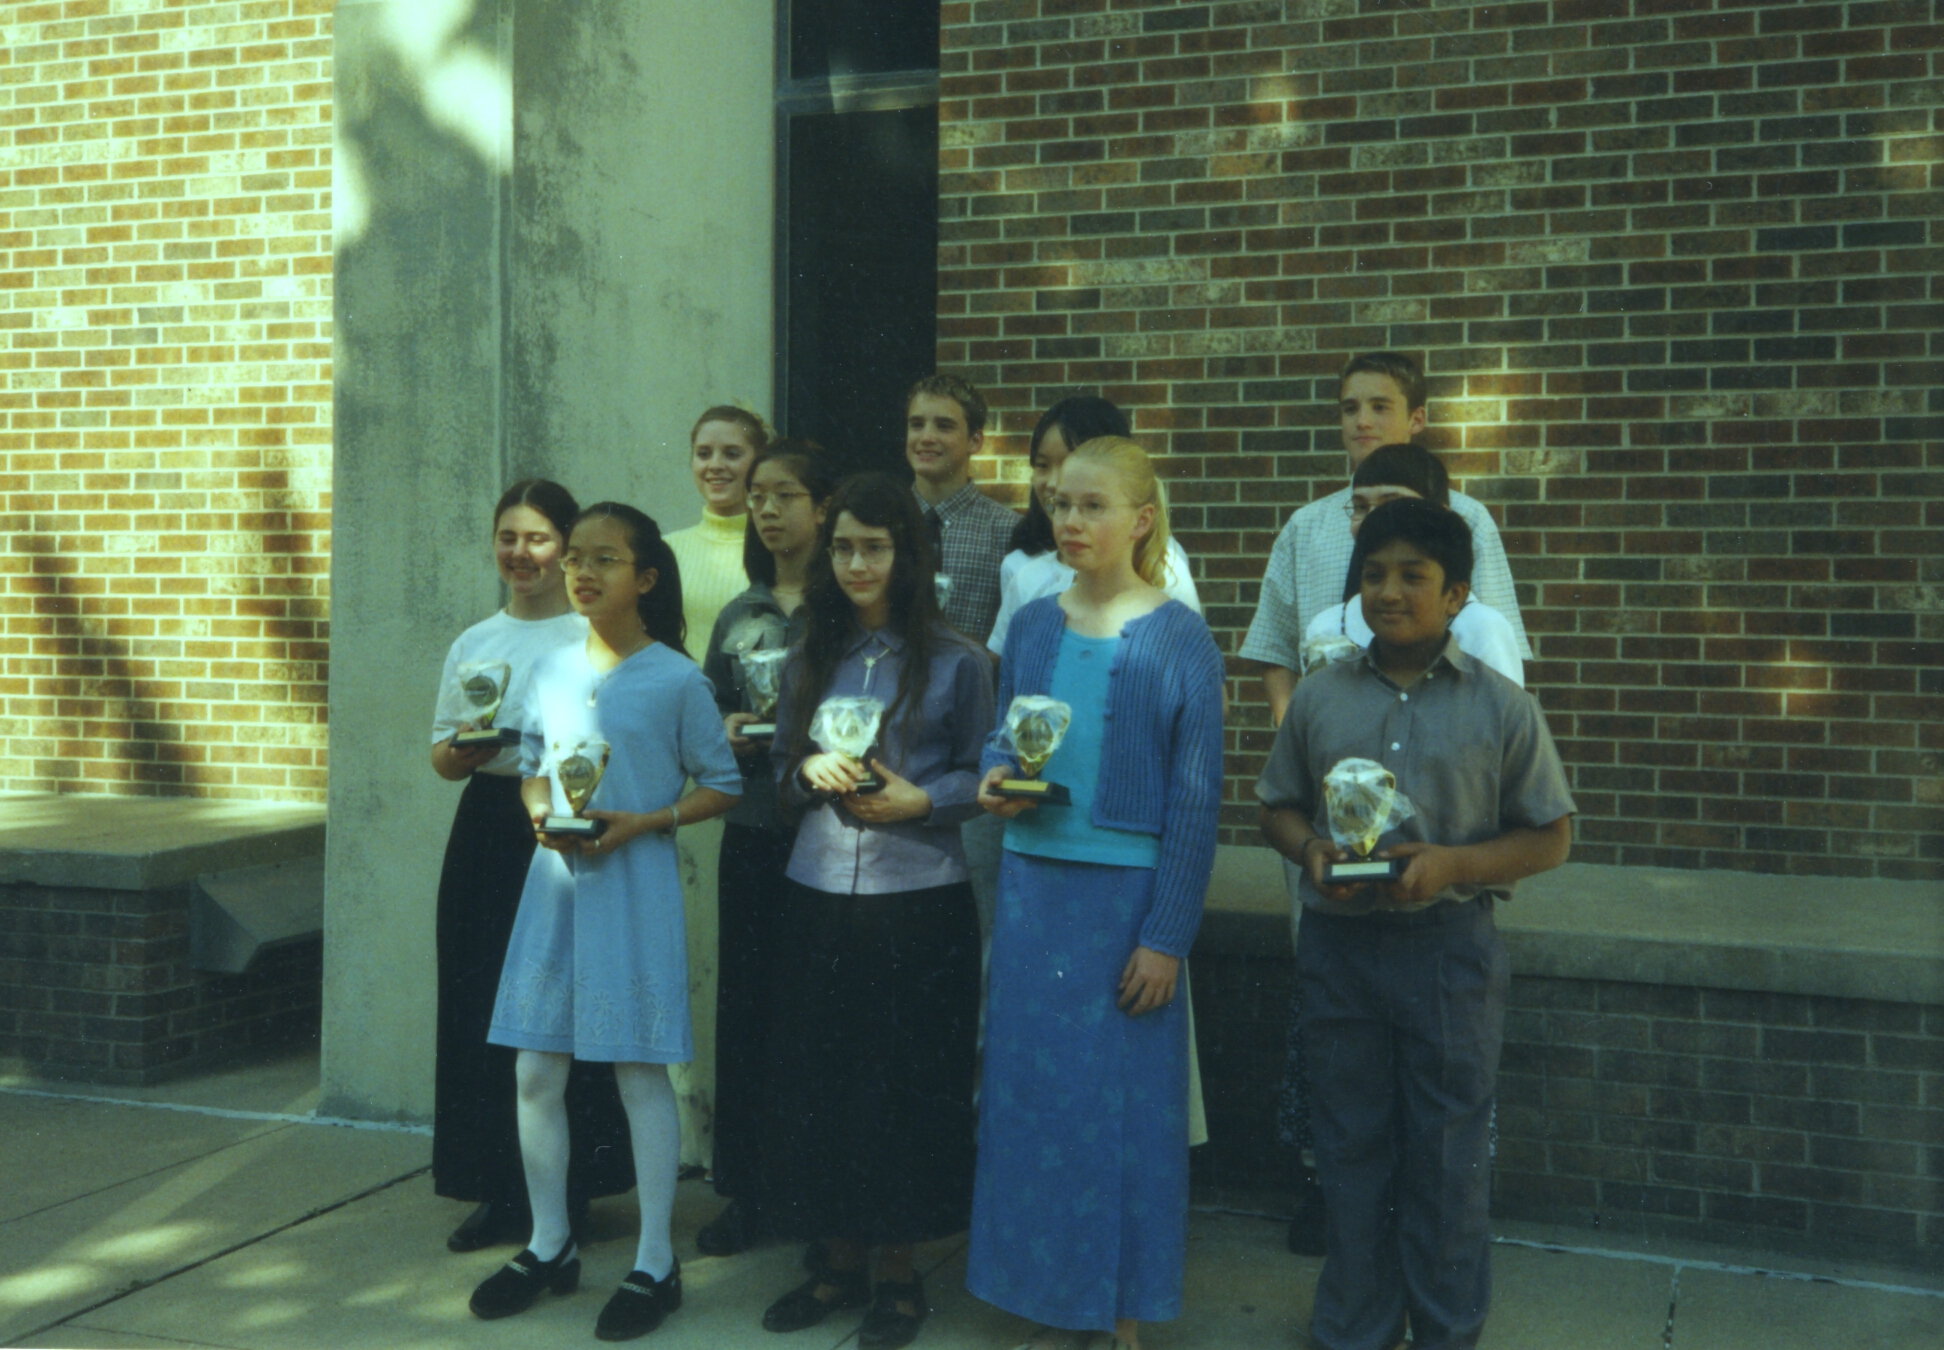 Bruce Clark's students with their awards from the WMTA state piano competition